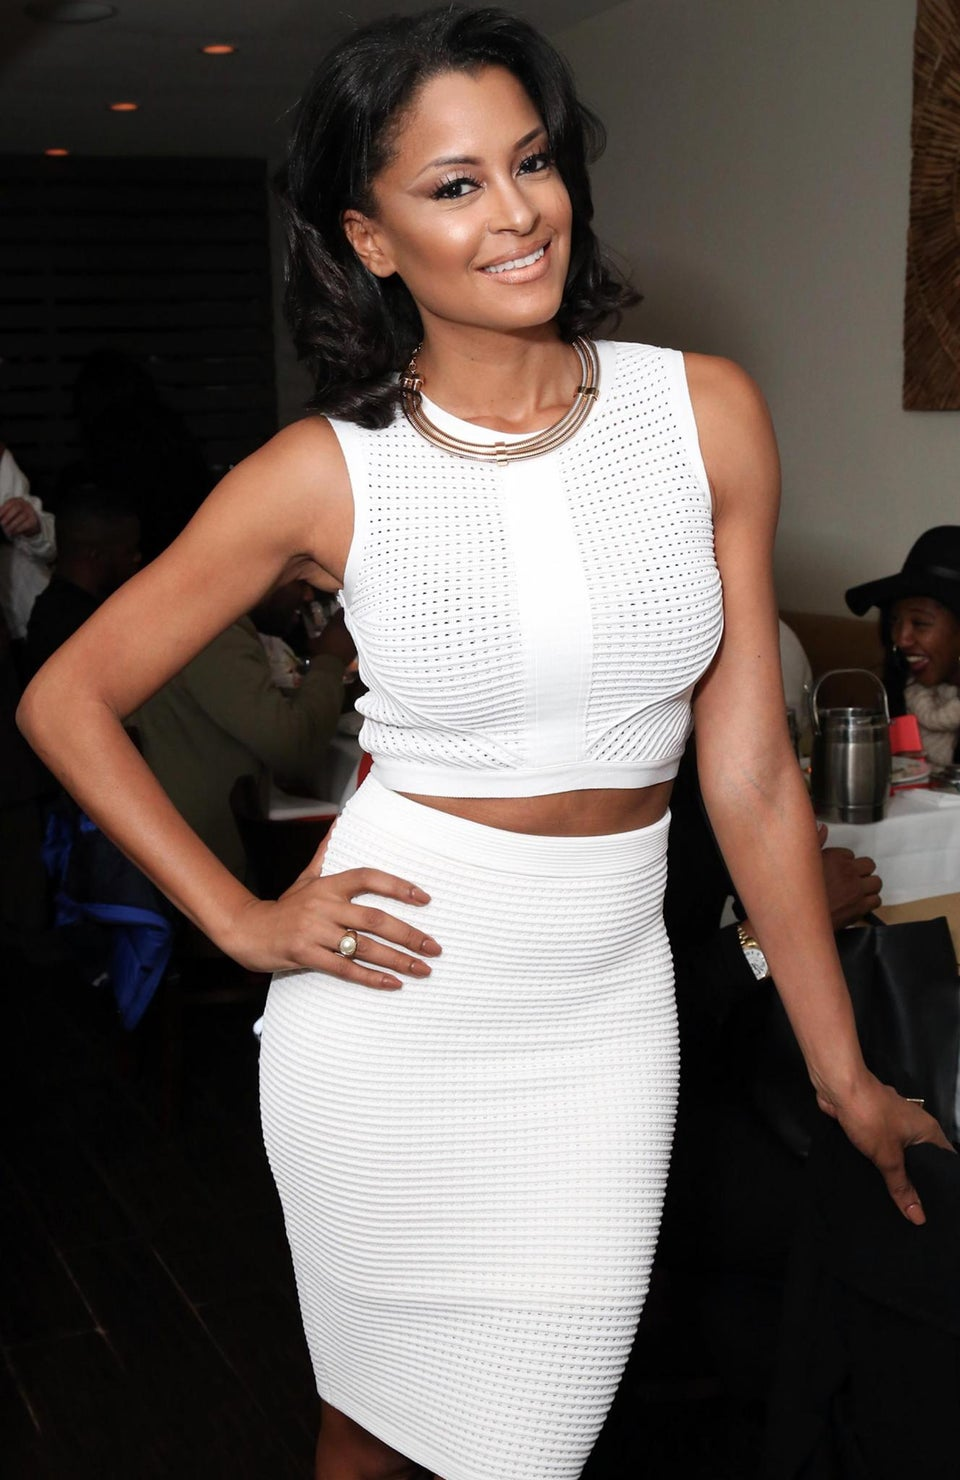 Has Claudia Jordan Been Booted Off 'Real Housewives of Atlanta'?